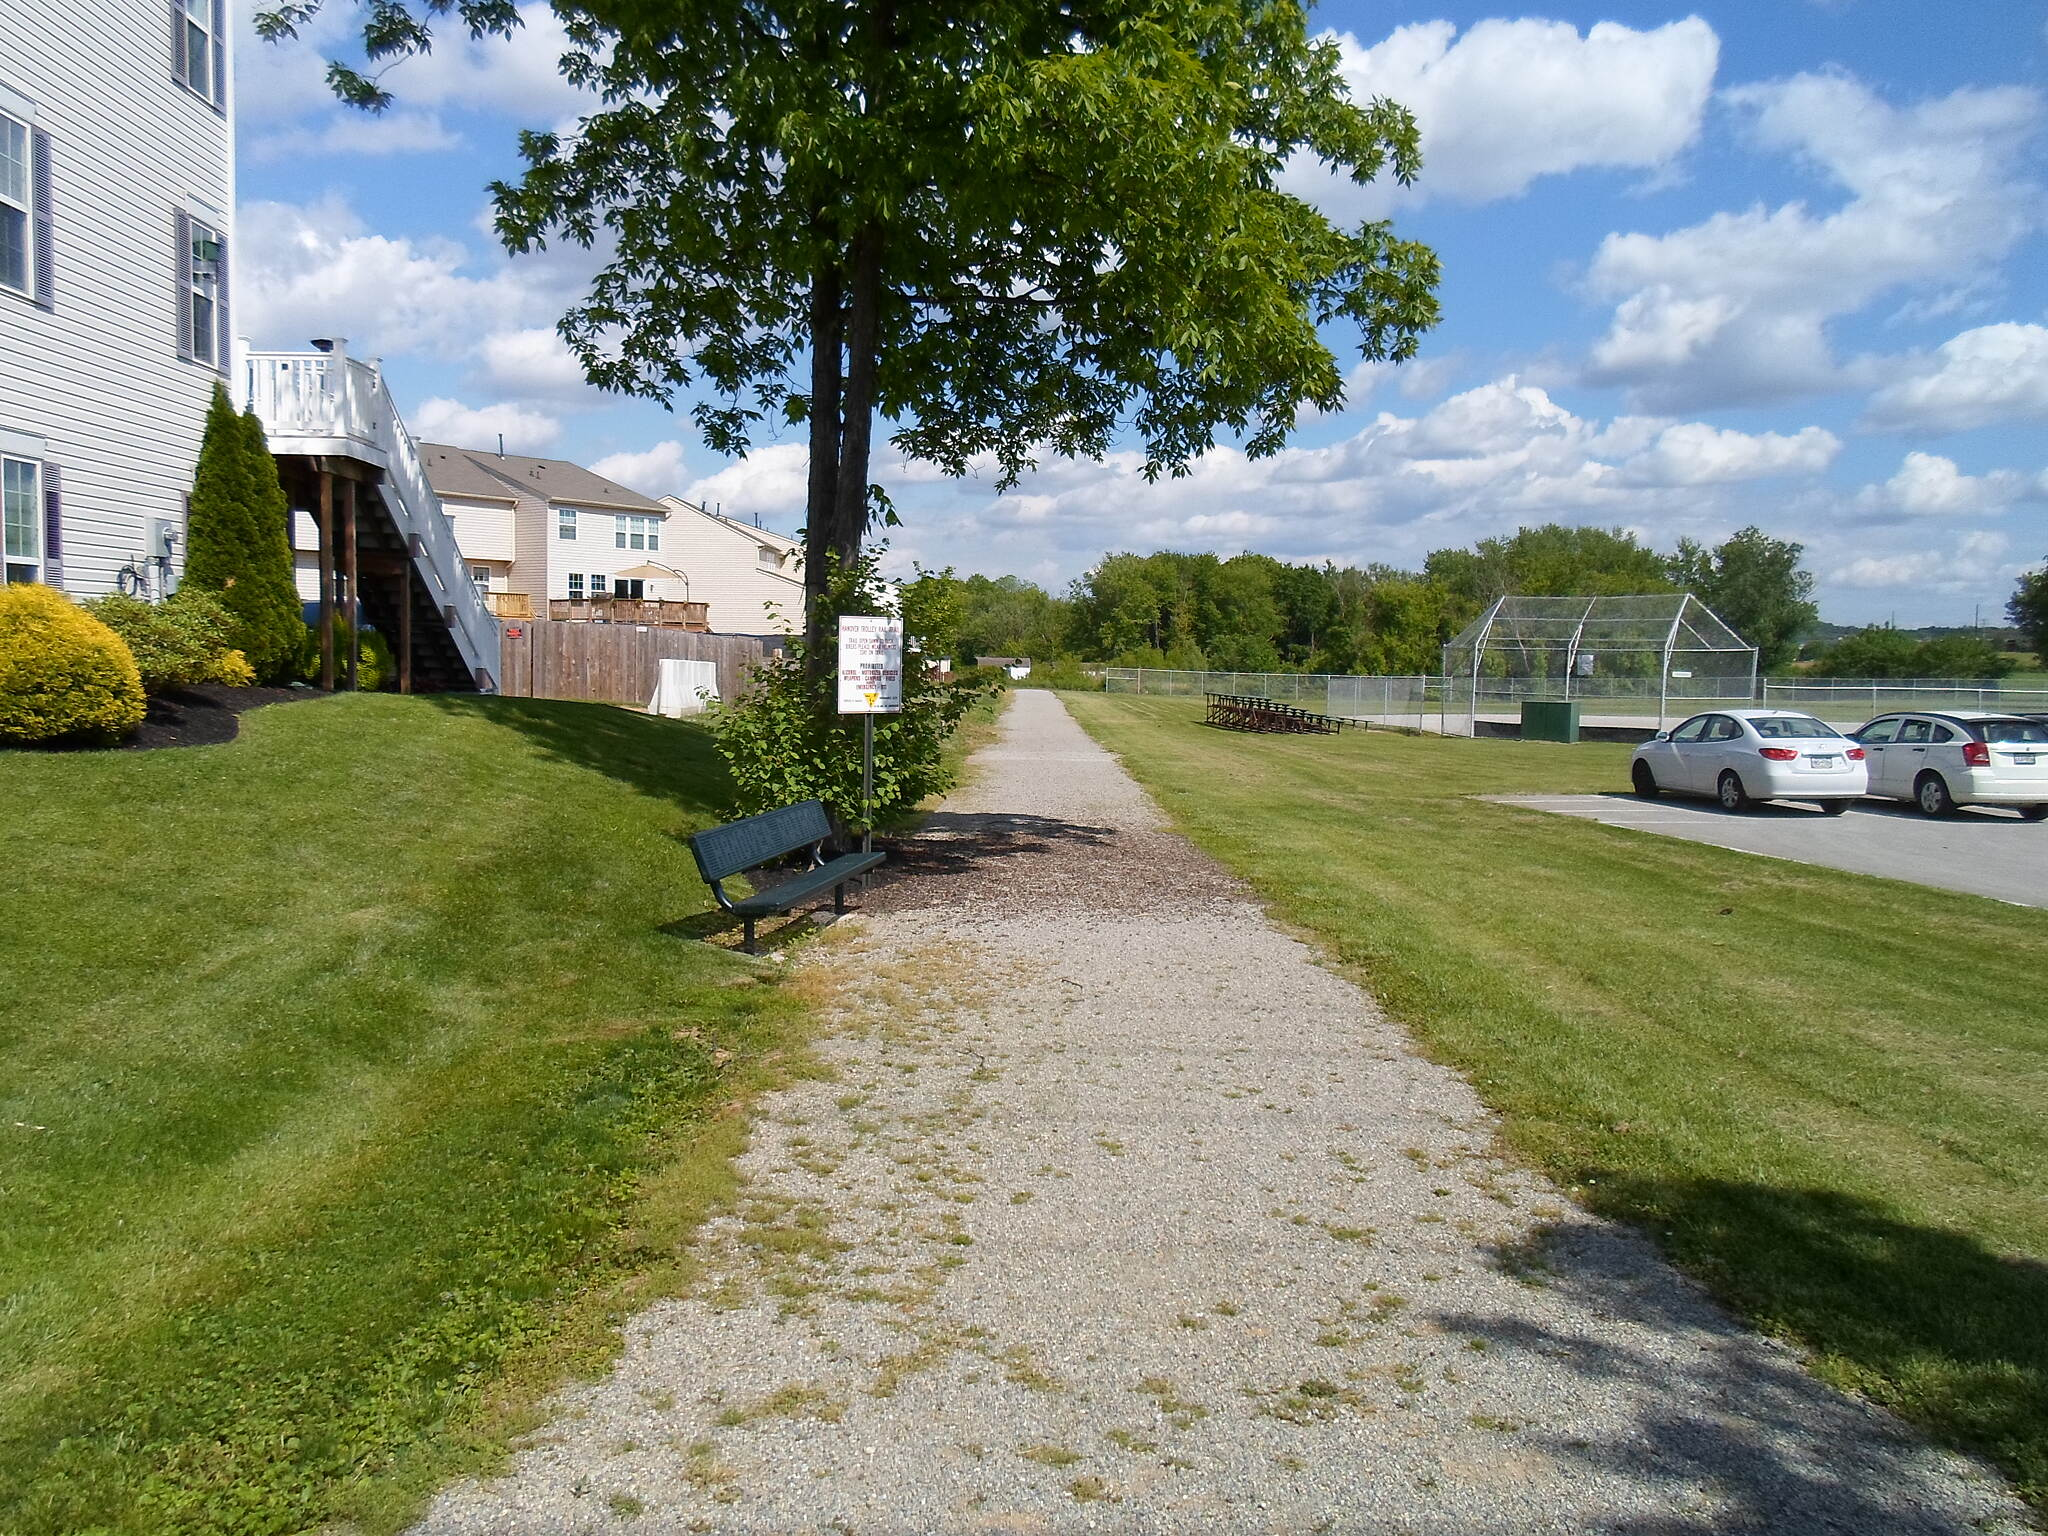 Hanover Trolley Trail Hanover Trolley Trail Looking east onto the Hanover/Penn Twp. segment of the trail from the western terminus in Hanover. The athletic fields of Moul Park can be seen to the right, a condo development to the left. Taken May 2014.